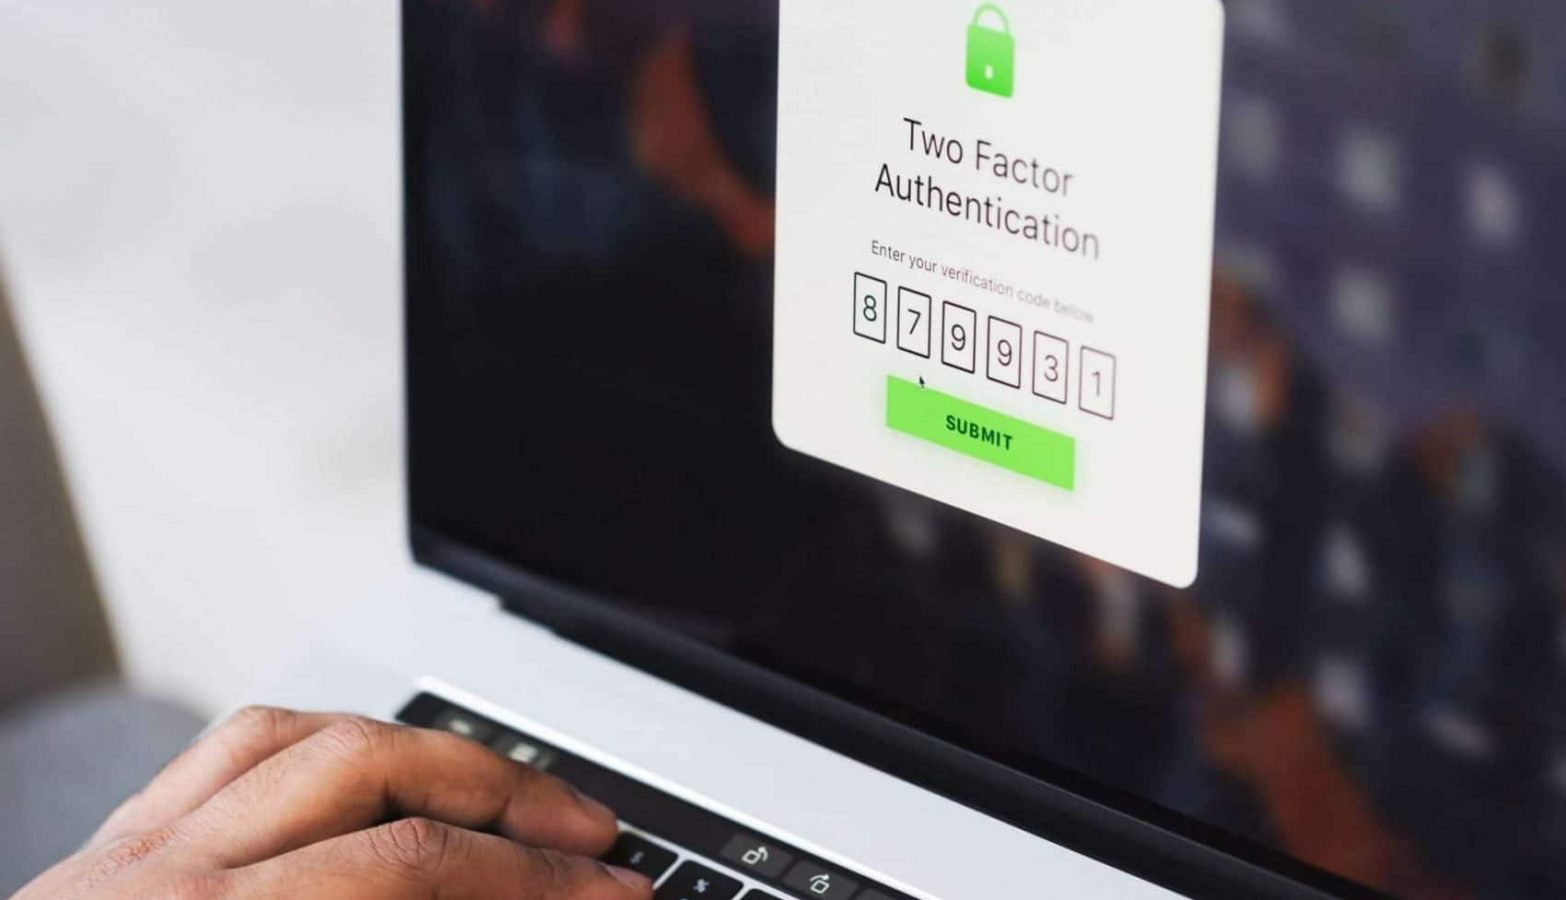 verification with two factor password